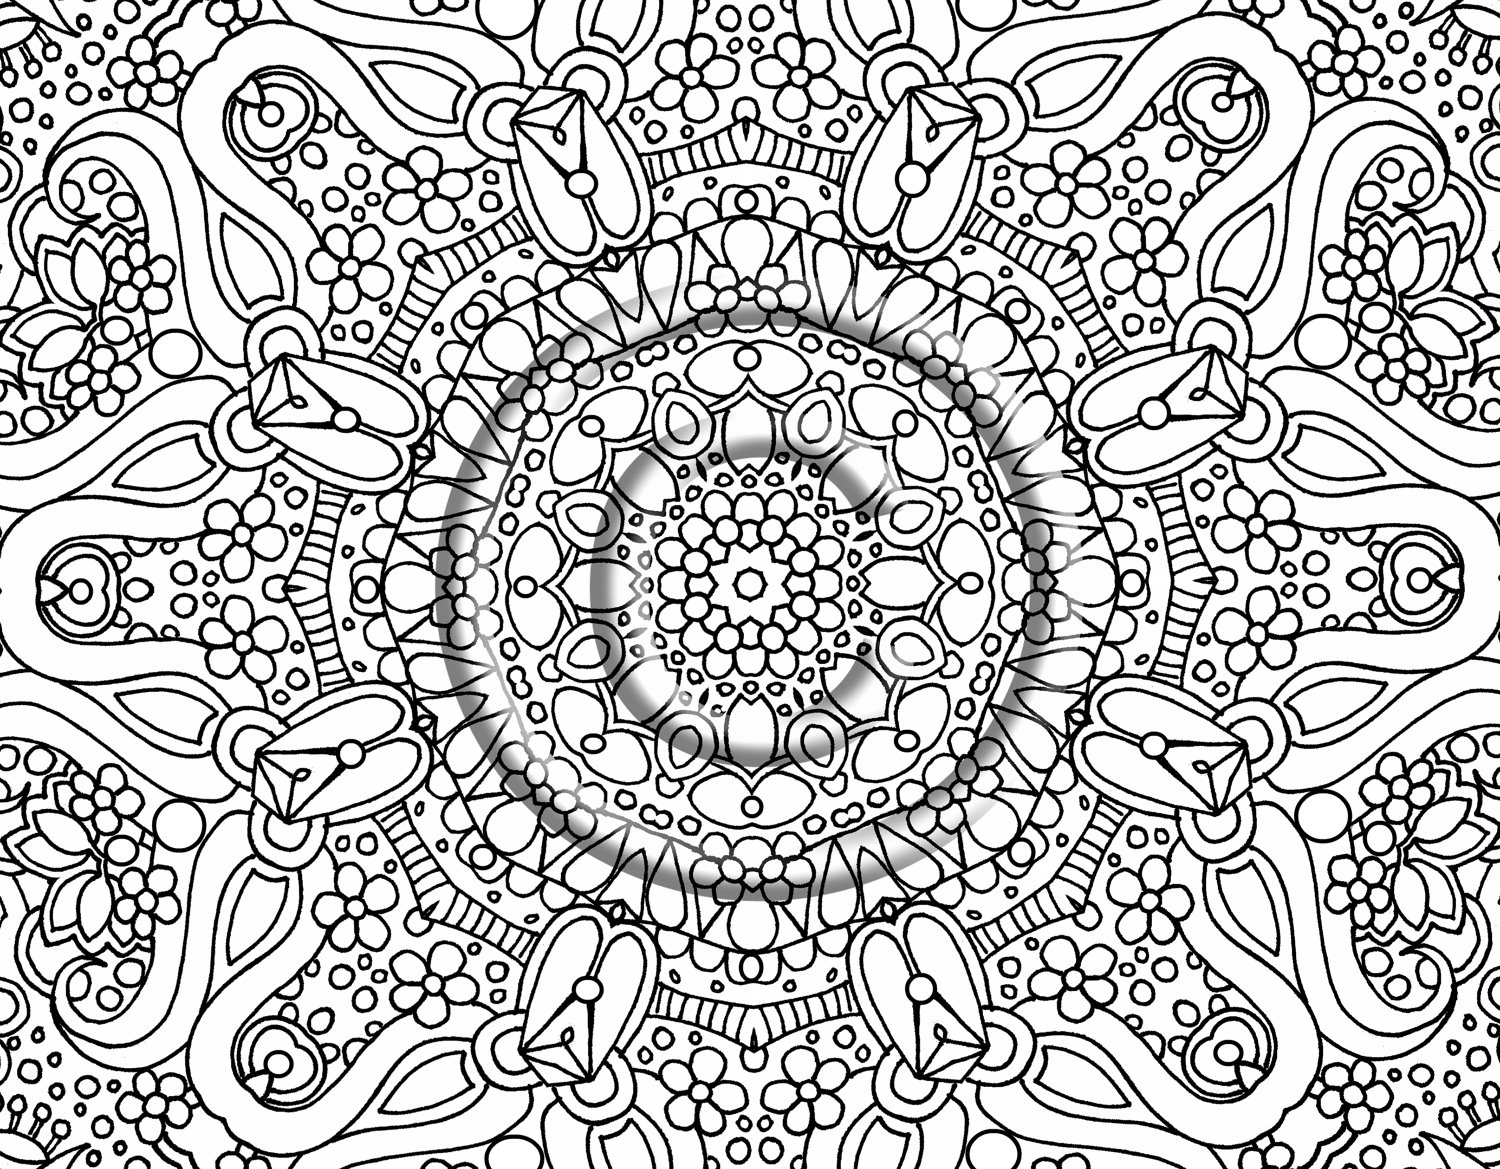 flower pattern coloring pages flower pattern coloring pages coloring home pattern flower pages coloring